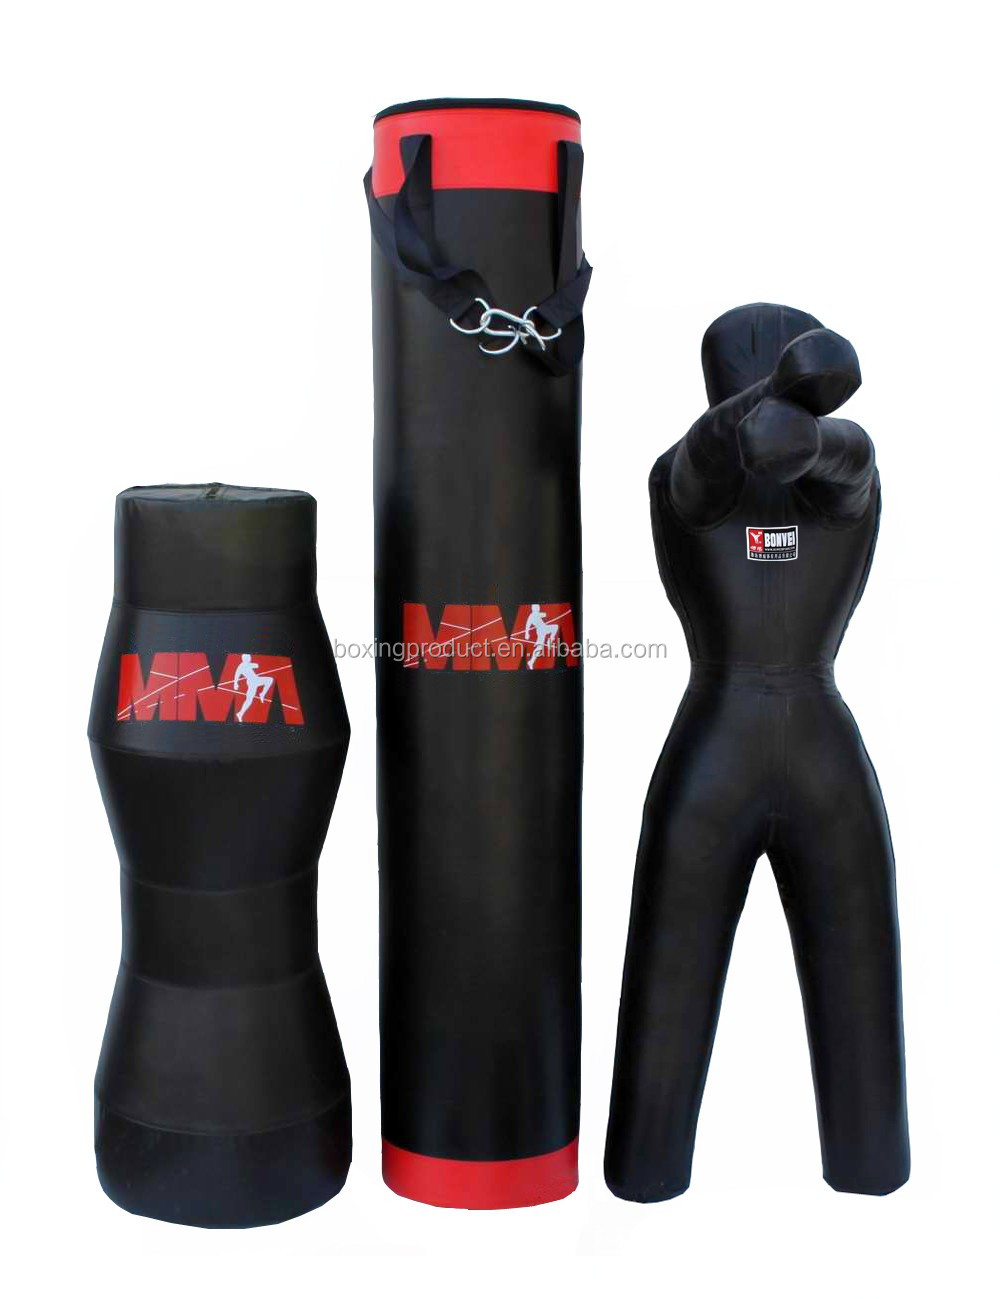 Muay Thai Heavy Bags / Boxing Punching Bags / PU Leather Kick Boxing Bags